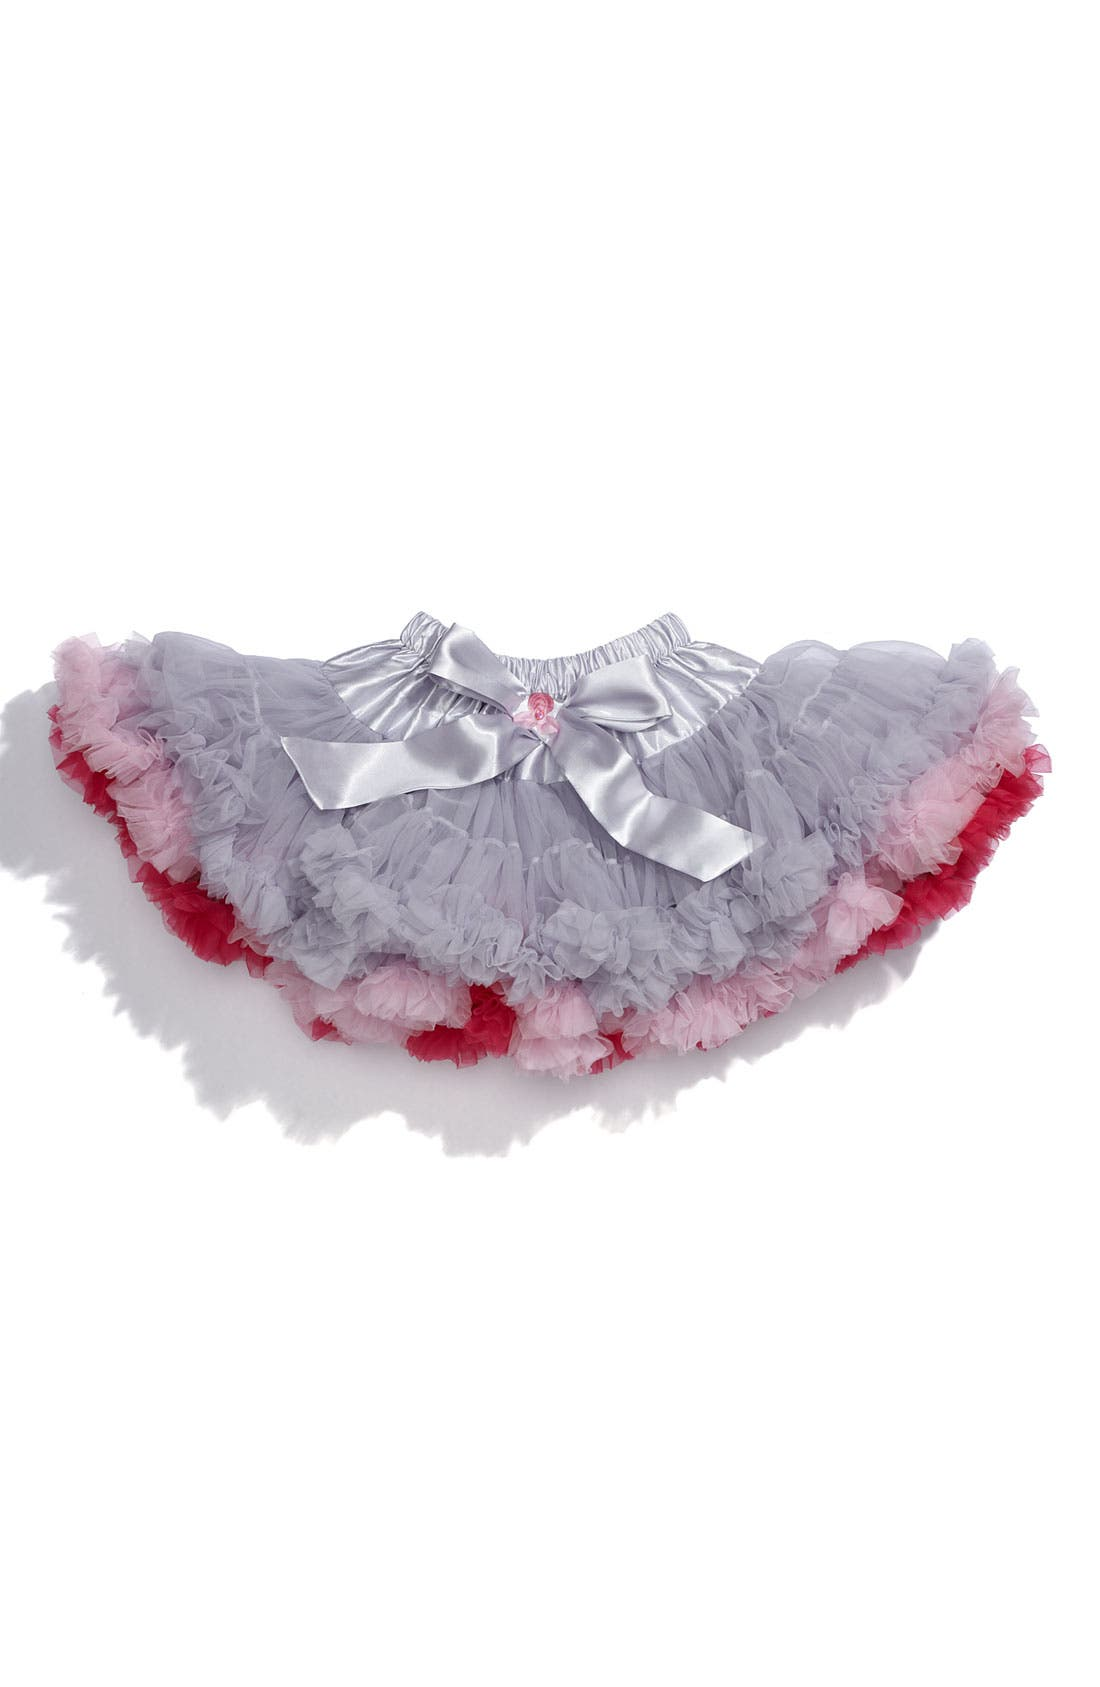 Main Image - PLH Bows & Laces Two Tone Pettiskirt (Infant)